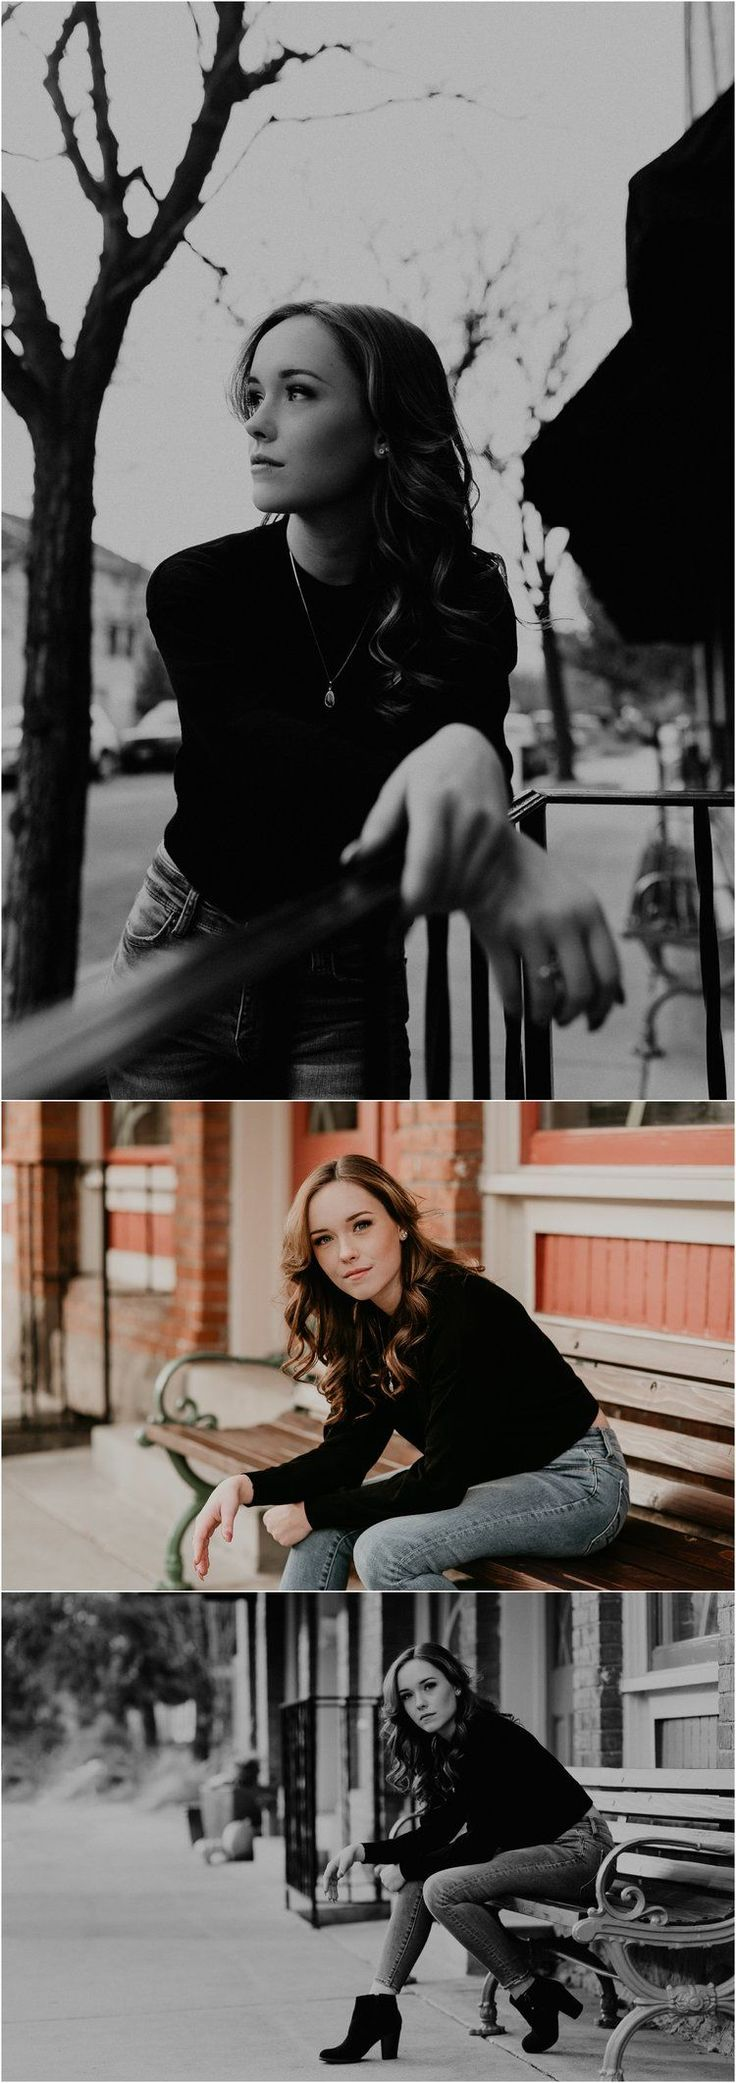 Boise Senior Photographer Makayla Madden Photography Downtown Boise Hyde Park Senior Session Senior Photography Urban Senior Picture Ideas Fun Senior Pics Senior Girl Outfit Ideas Inspiration Sassy Portrait Poses Serious Senior Pictures #seniorphotography,